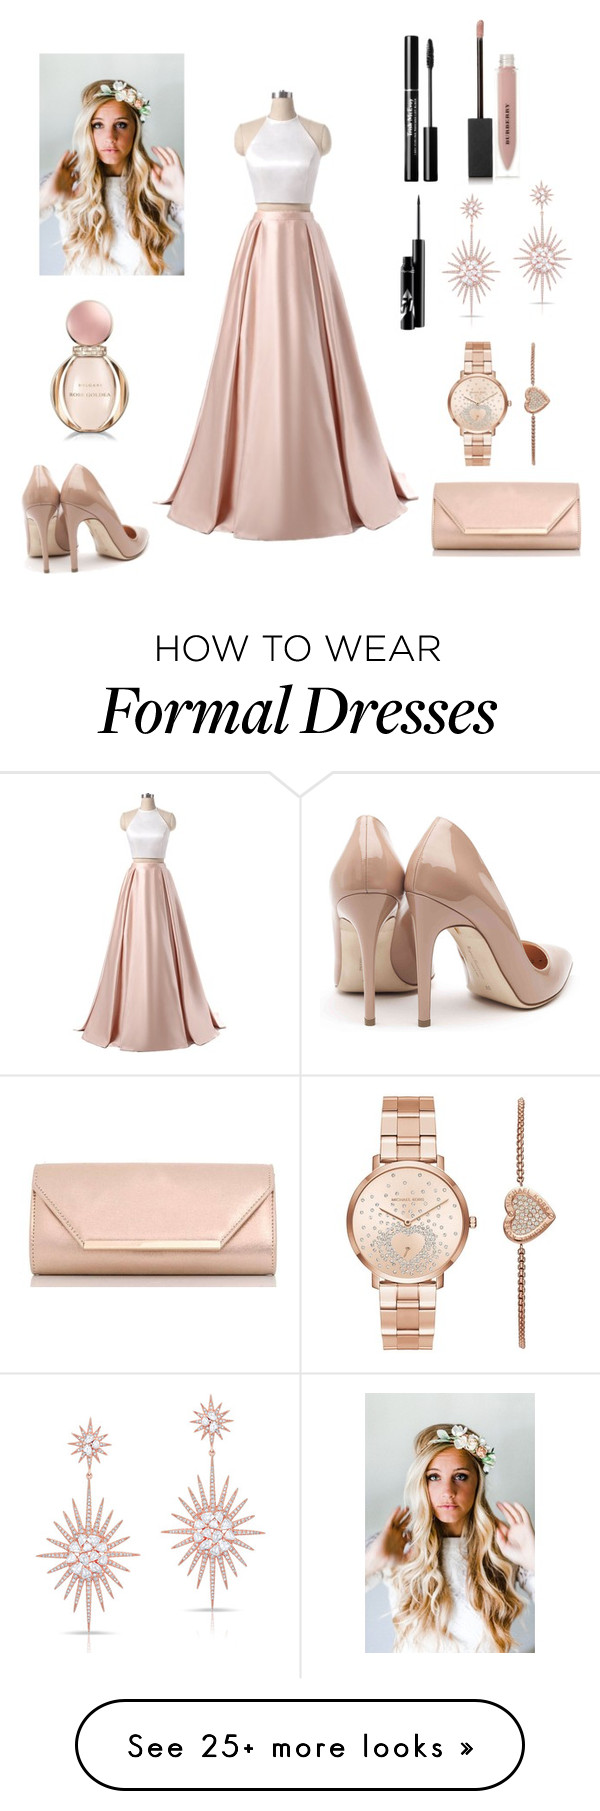 """""""Untitled #35"""" by biancagrigoremihaela on Polyvore featuring Rupert Sanderson, Dorothy Perkins, Emily Rose Flower Crowns, Michael Kors, Anne Sisteron, Burberry and Bulgari"""